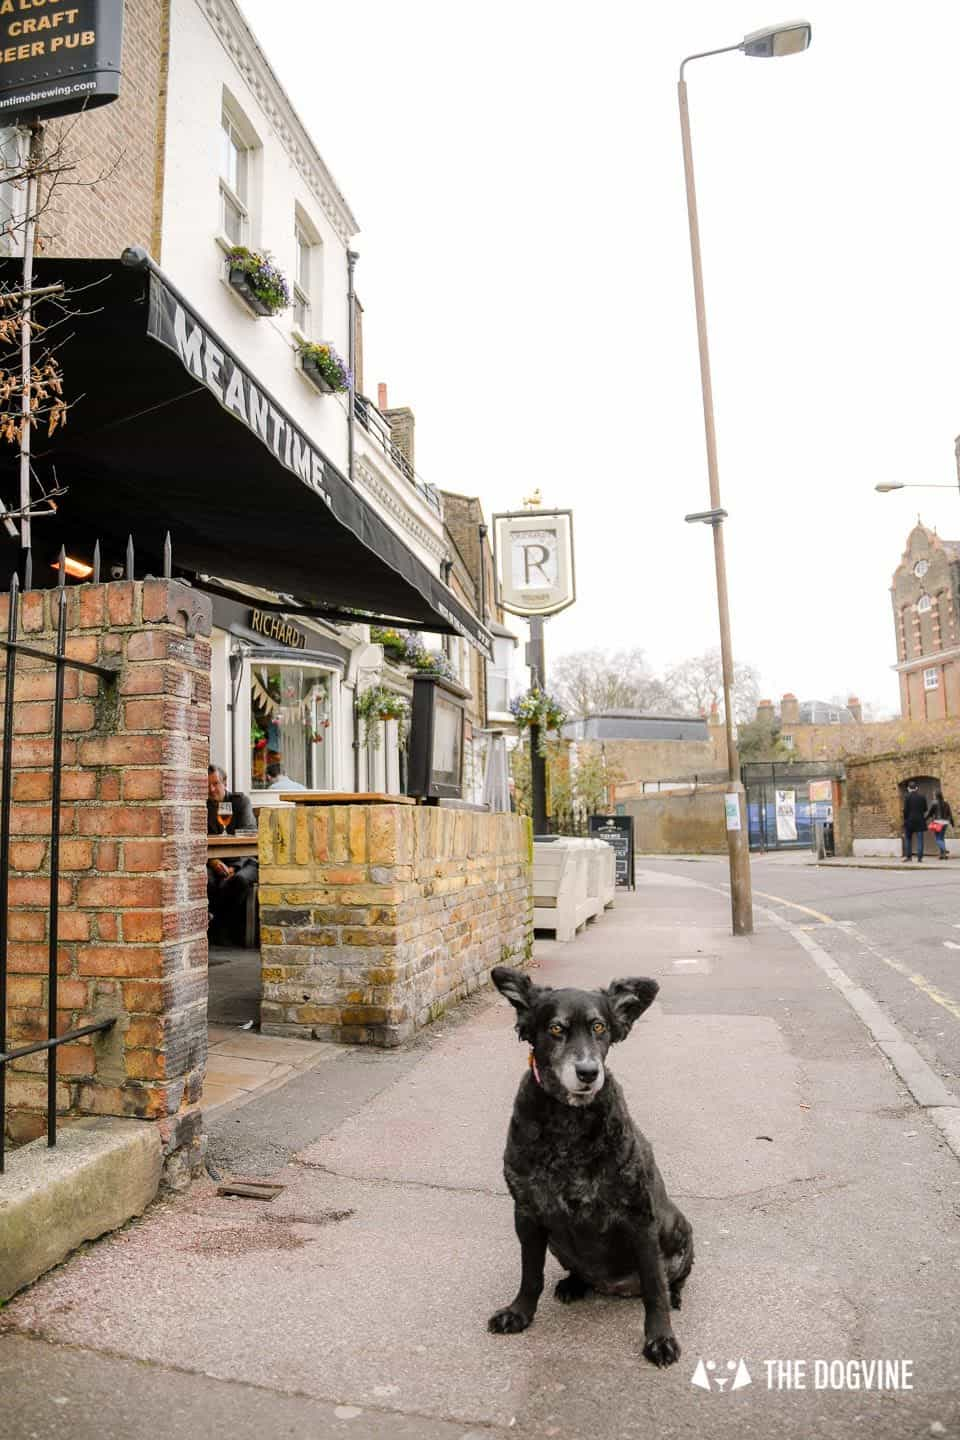 The Dogvine Guide to Dog-friendly Greenwich 3